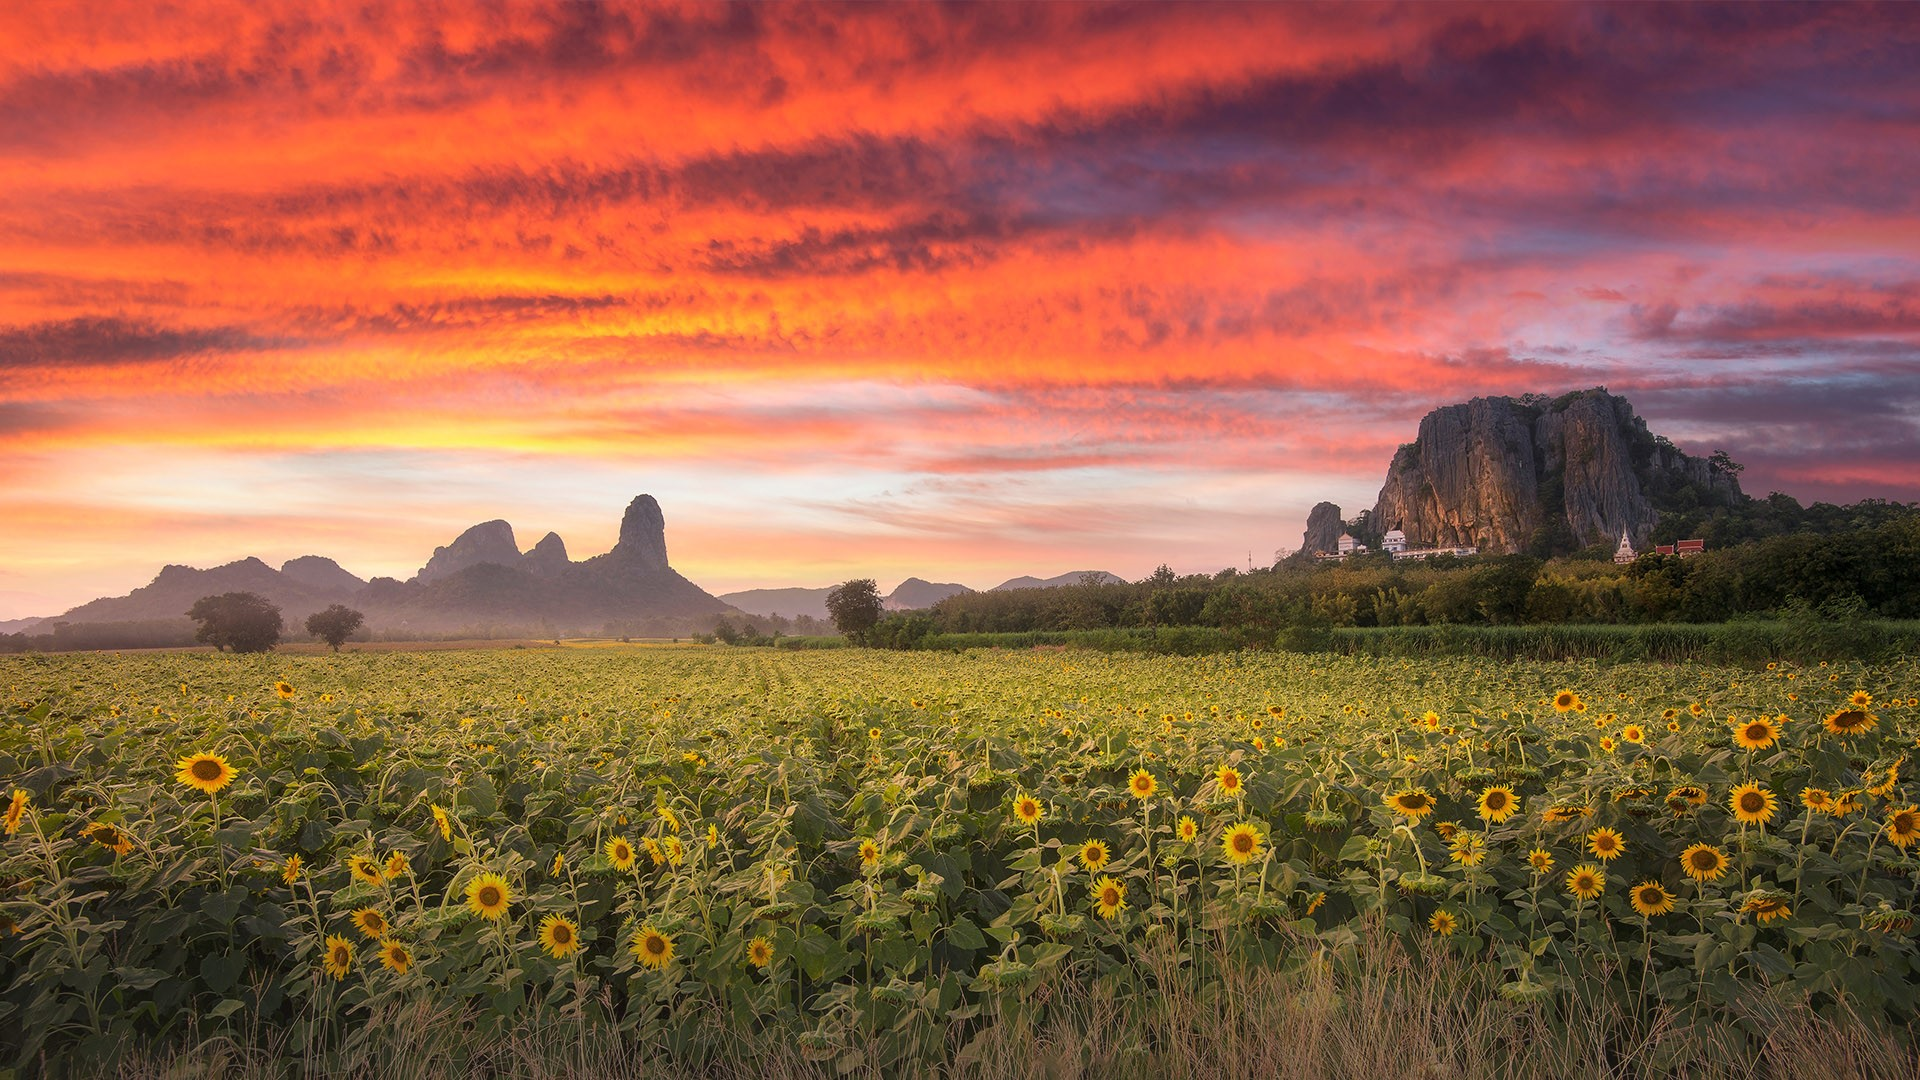 General 1920x1080 nature landscape mountains trees field clouds sunset plants sunflowers sky Thailand